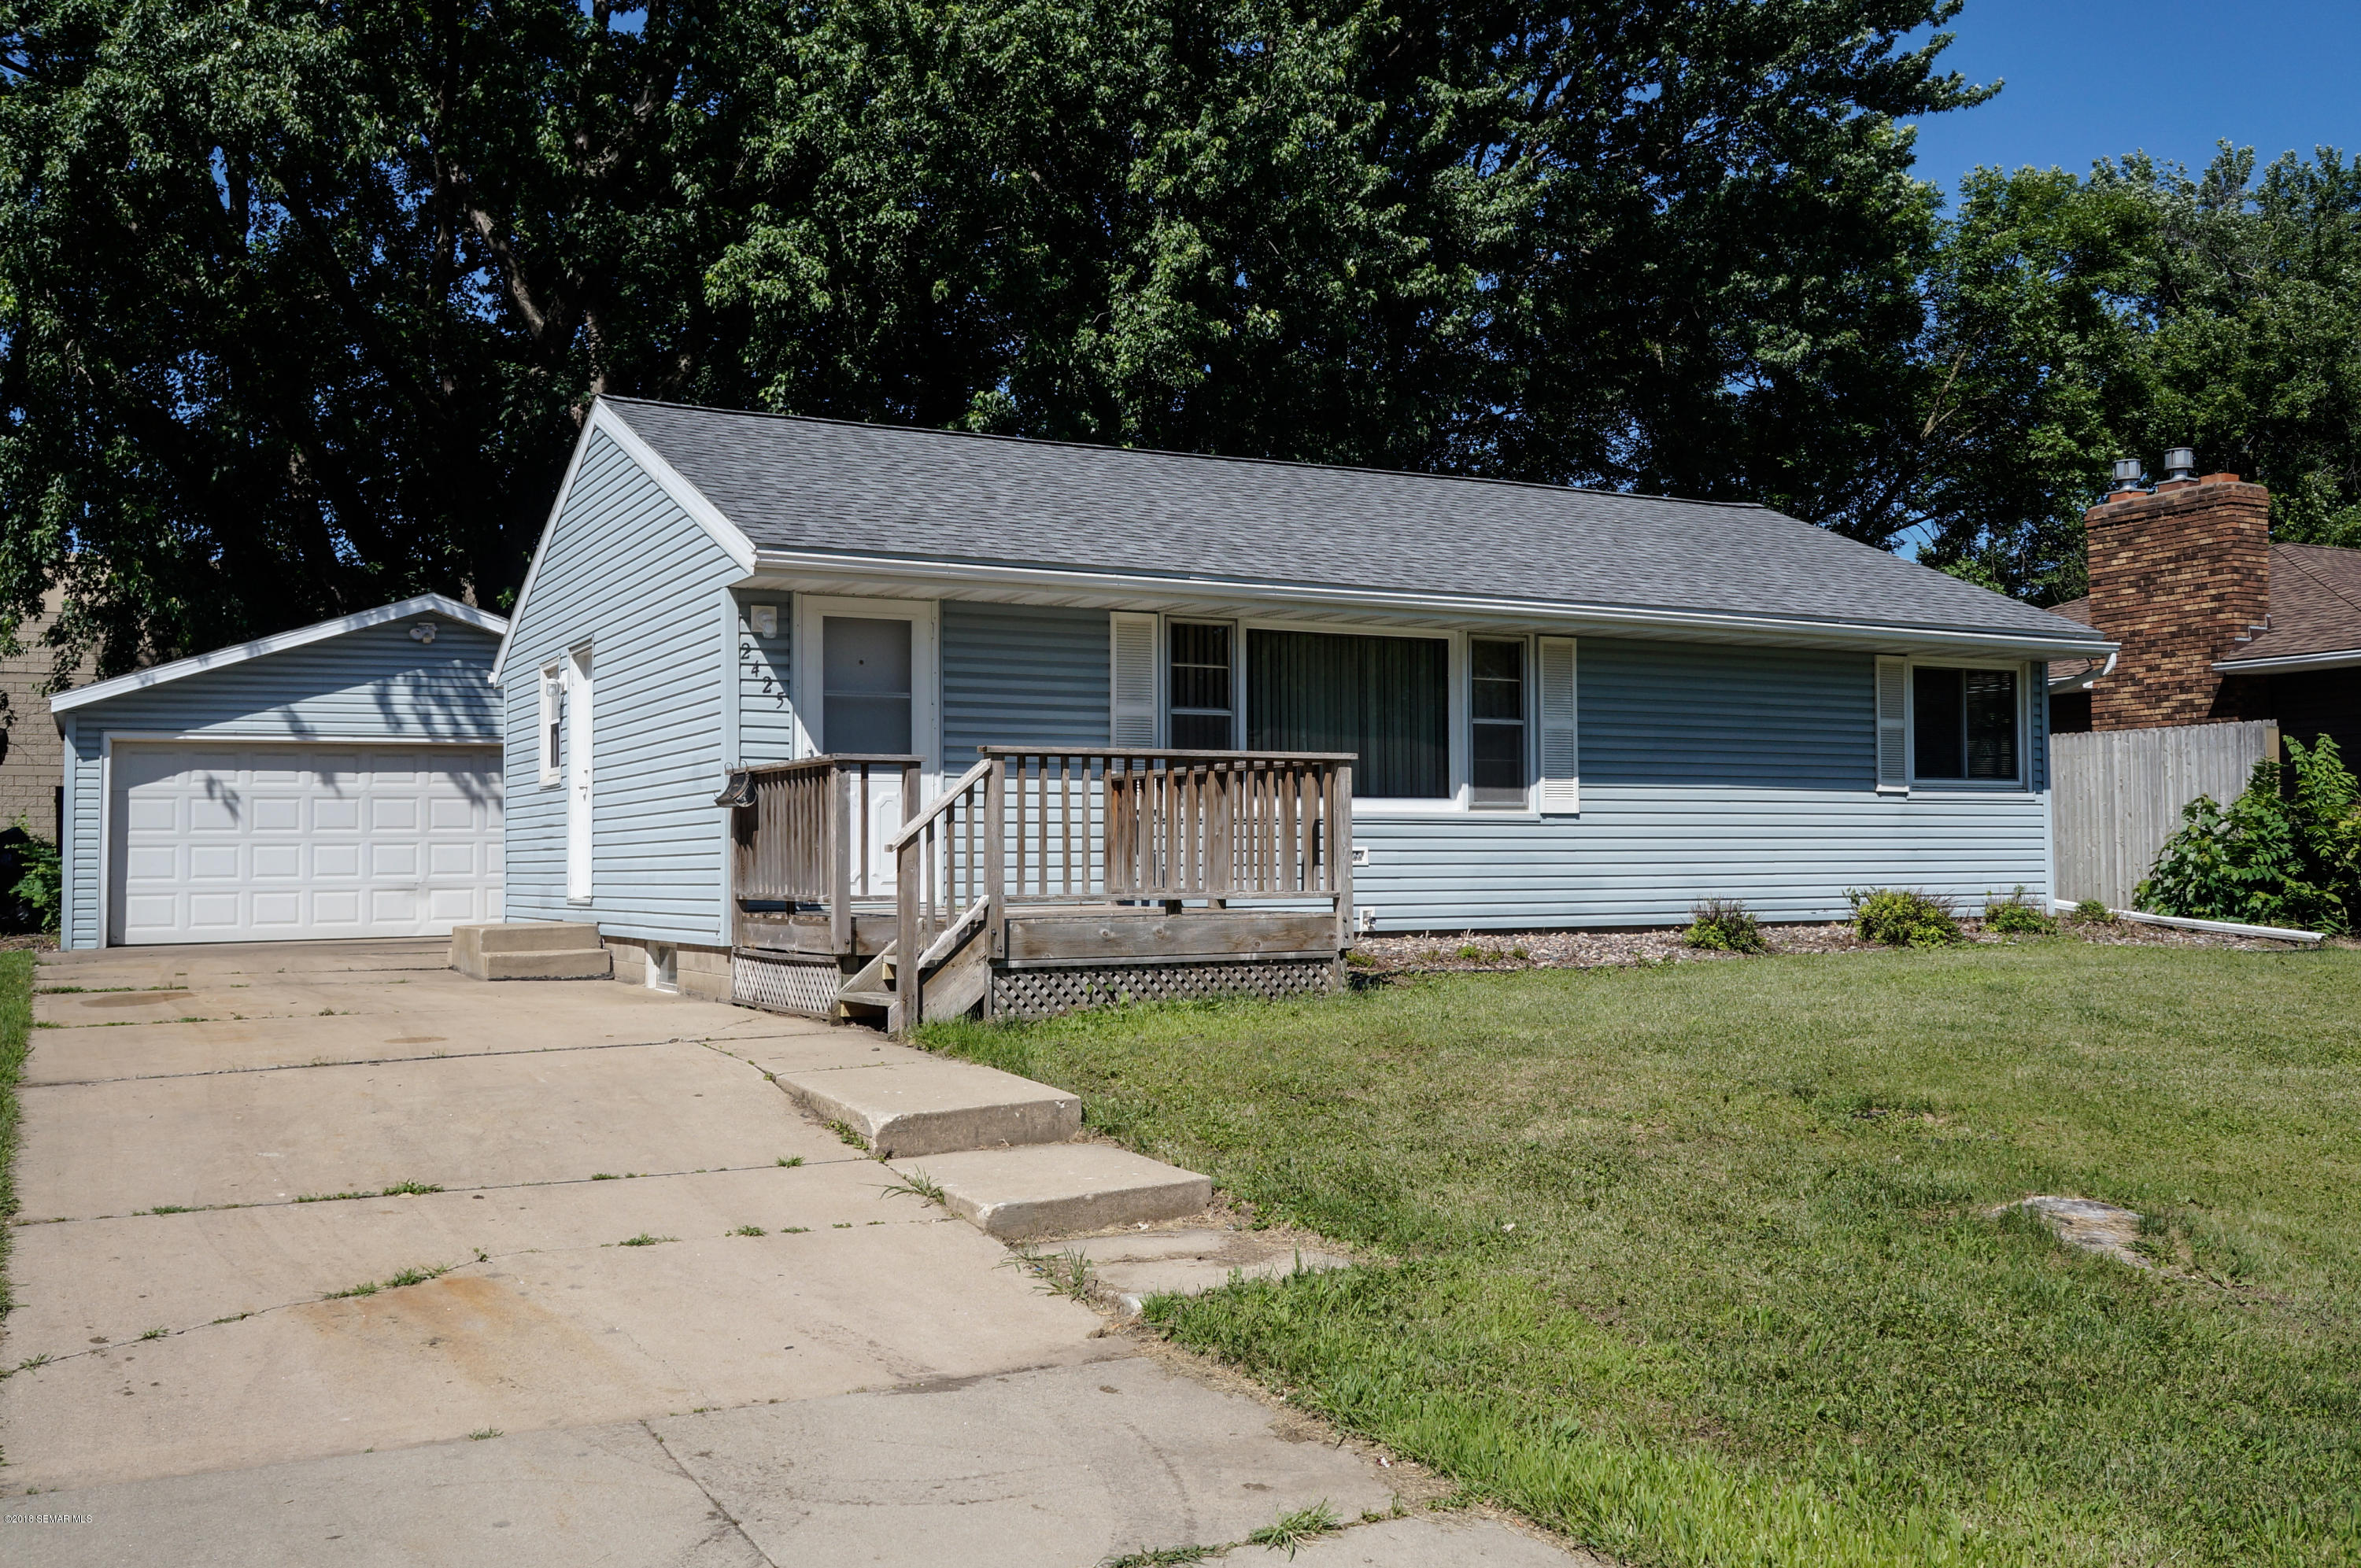 2425 19th Avenue NW, Rochester in Olmsted County, MN 55901 Home for Sale